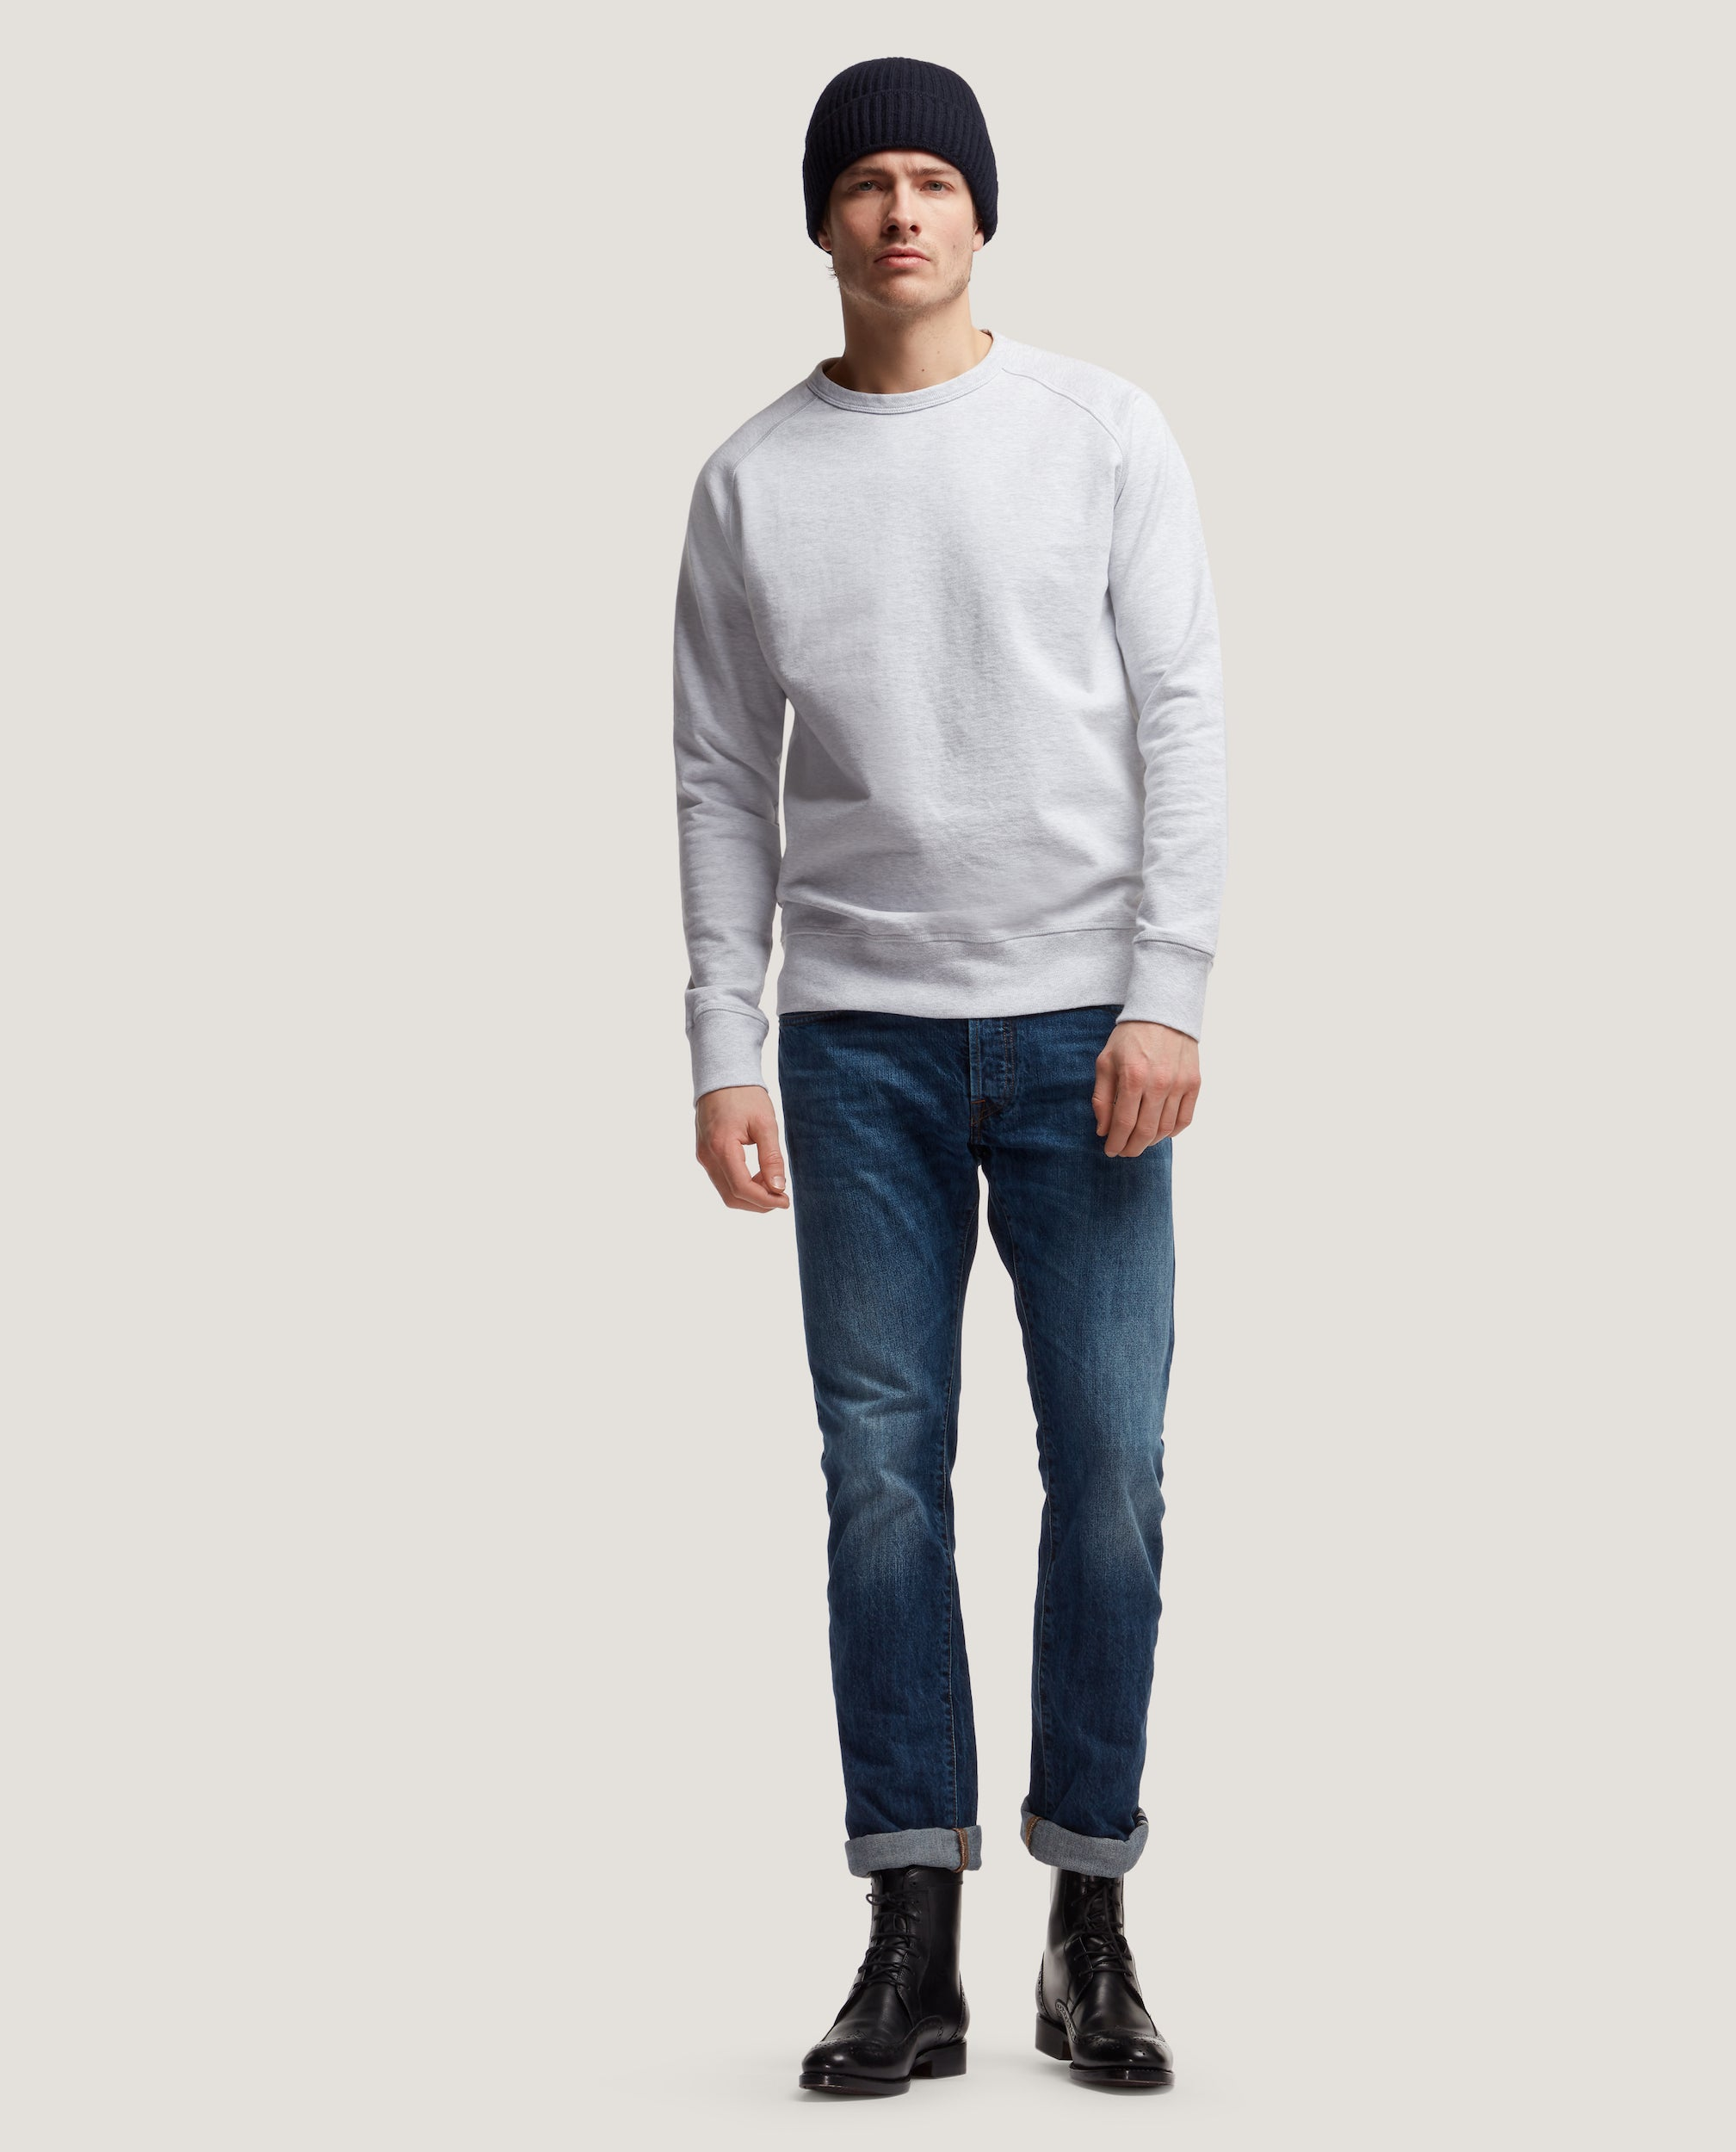 COLE Cotton sweatshirt | Raglan sleeves